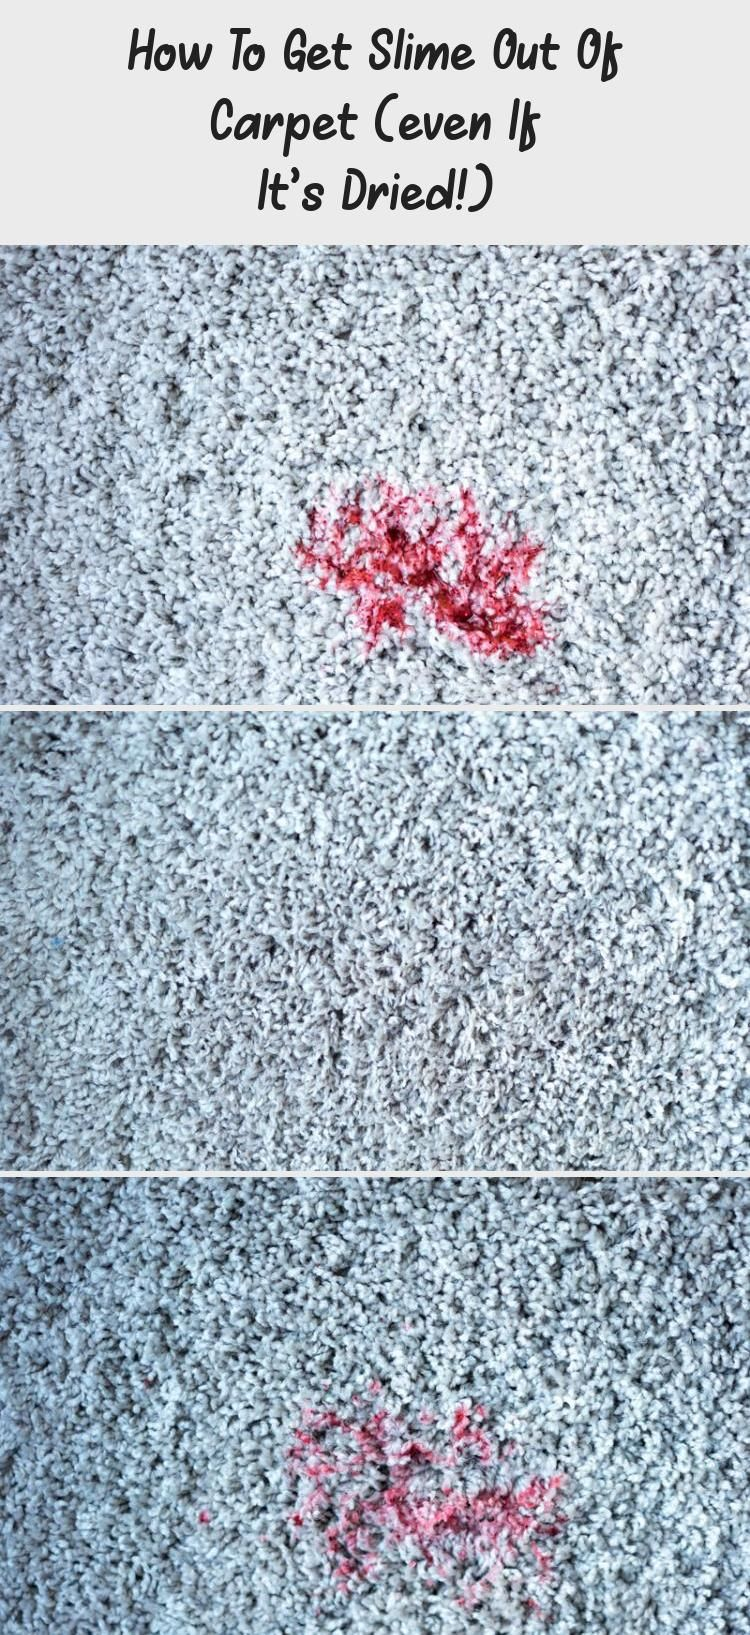 How To Get Slime Out Of Carpet Very Easy Cleaning Tip For How To Get Dried Slime Out Of Carpet It S Easy To Remove In 2020 Carpet How To Clean